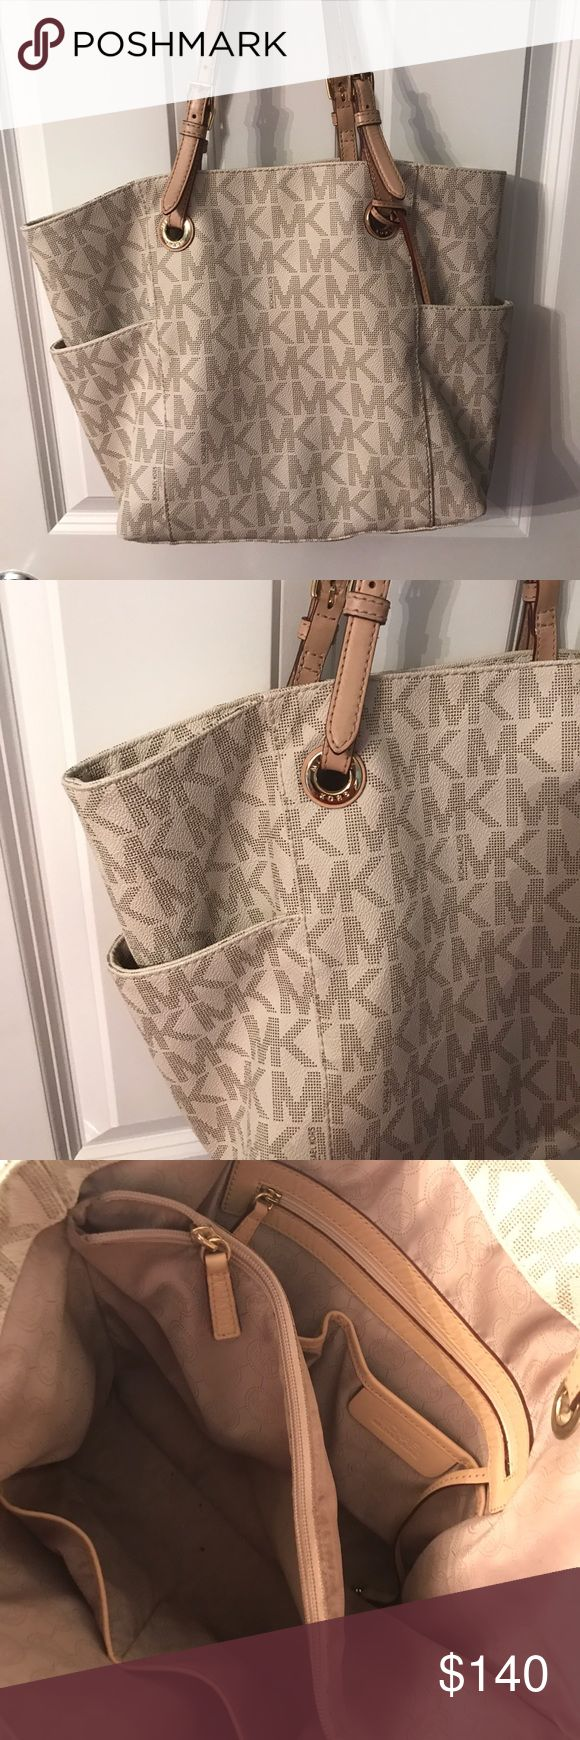 Michael Kors Jet Set Tote in Vanilla Michael Kors Jet Set Tote in Vanilla. Only used a few times, still in excellent like new condition. Willing to discuss offers. Michael Kors Bags Totes